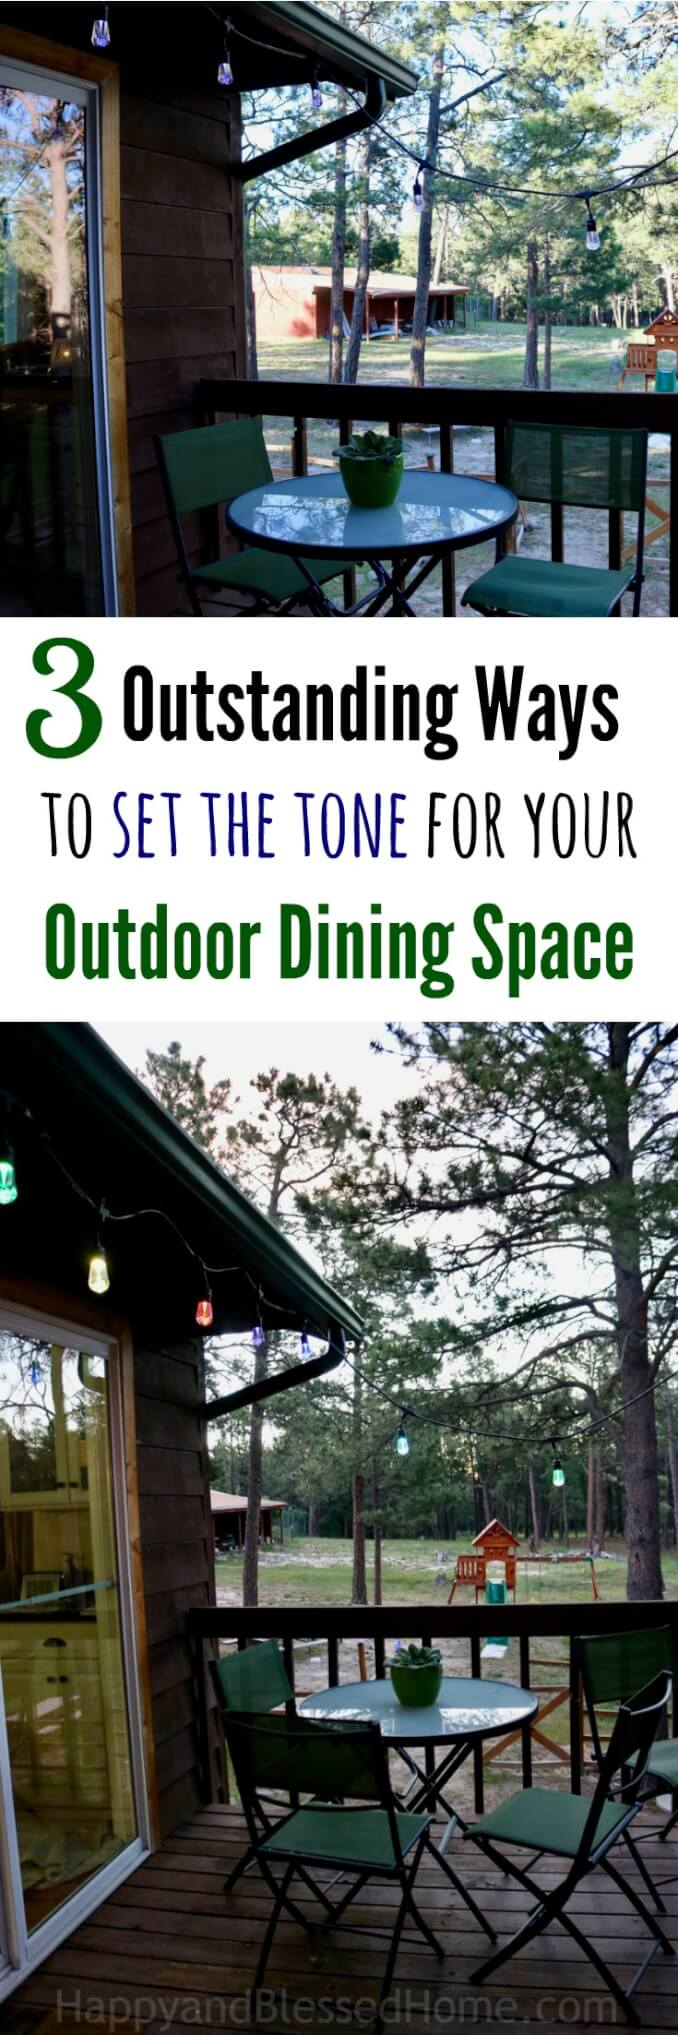 3 Outstanding Ways to Set the Tone for your Outdoor Dining Space